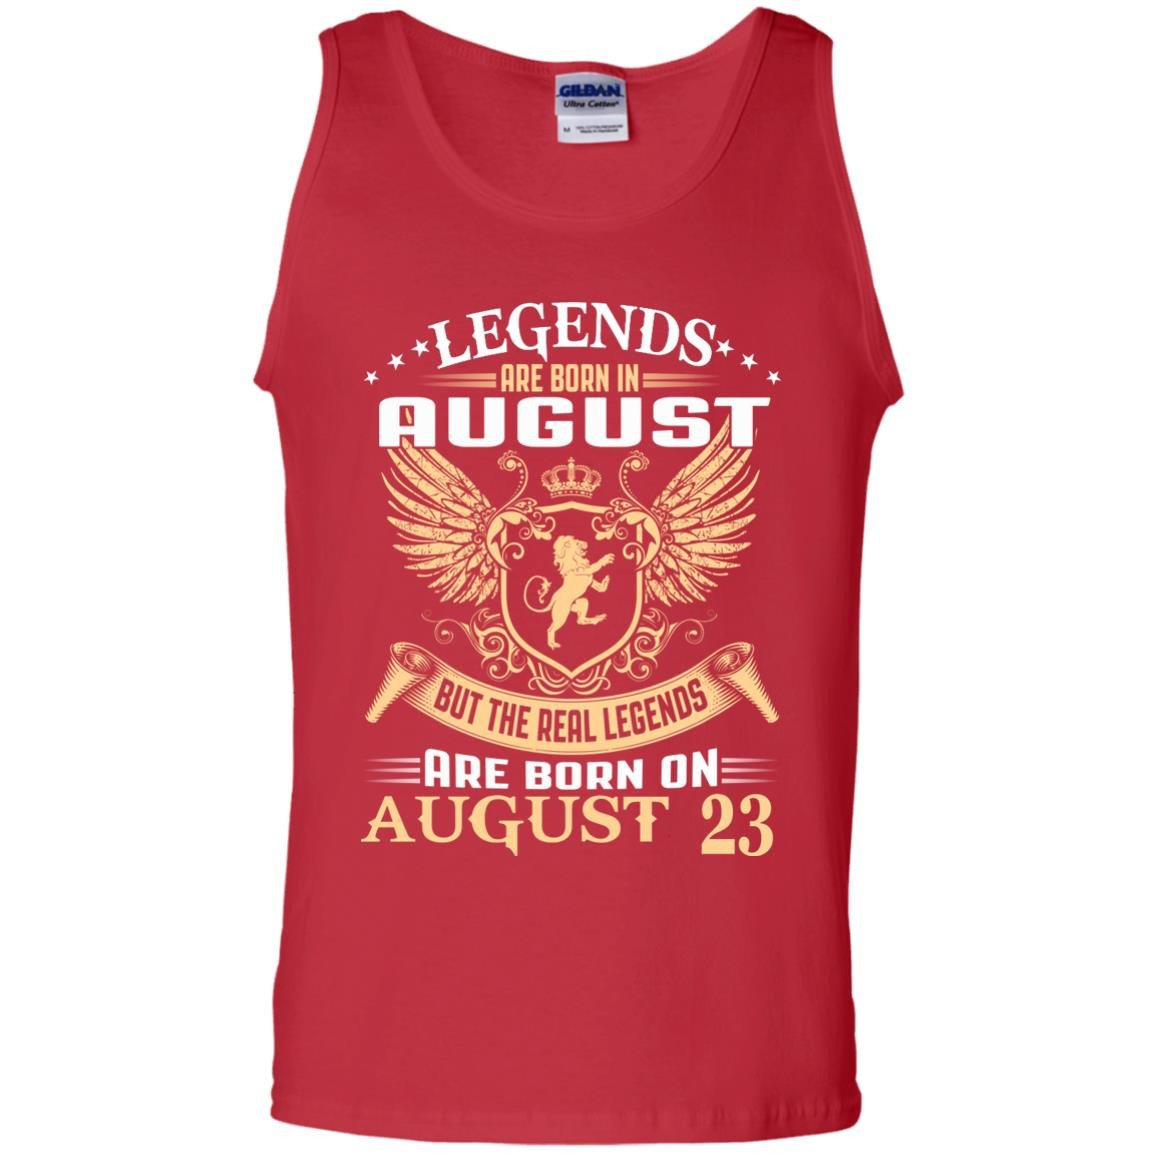 1007 The real kings legends are born on august 23 Tank top